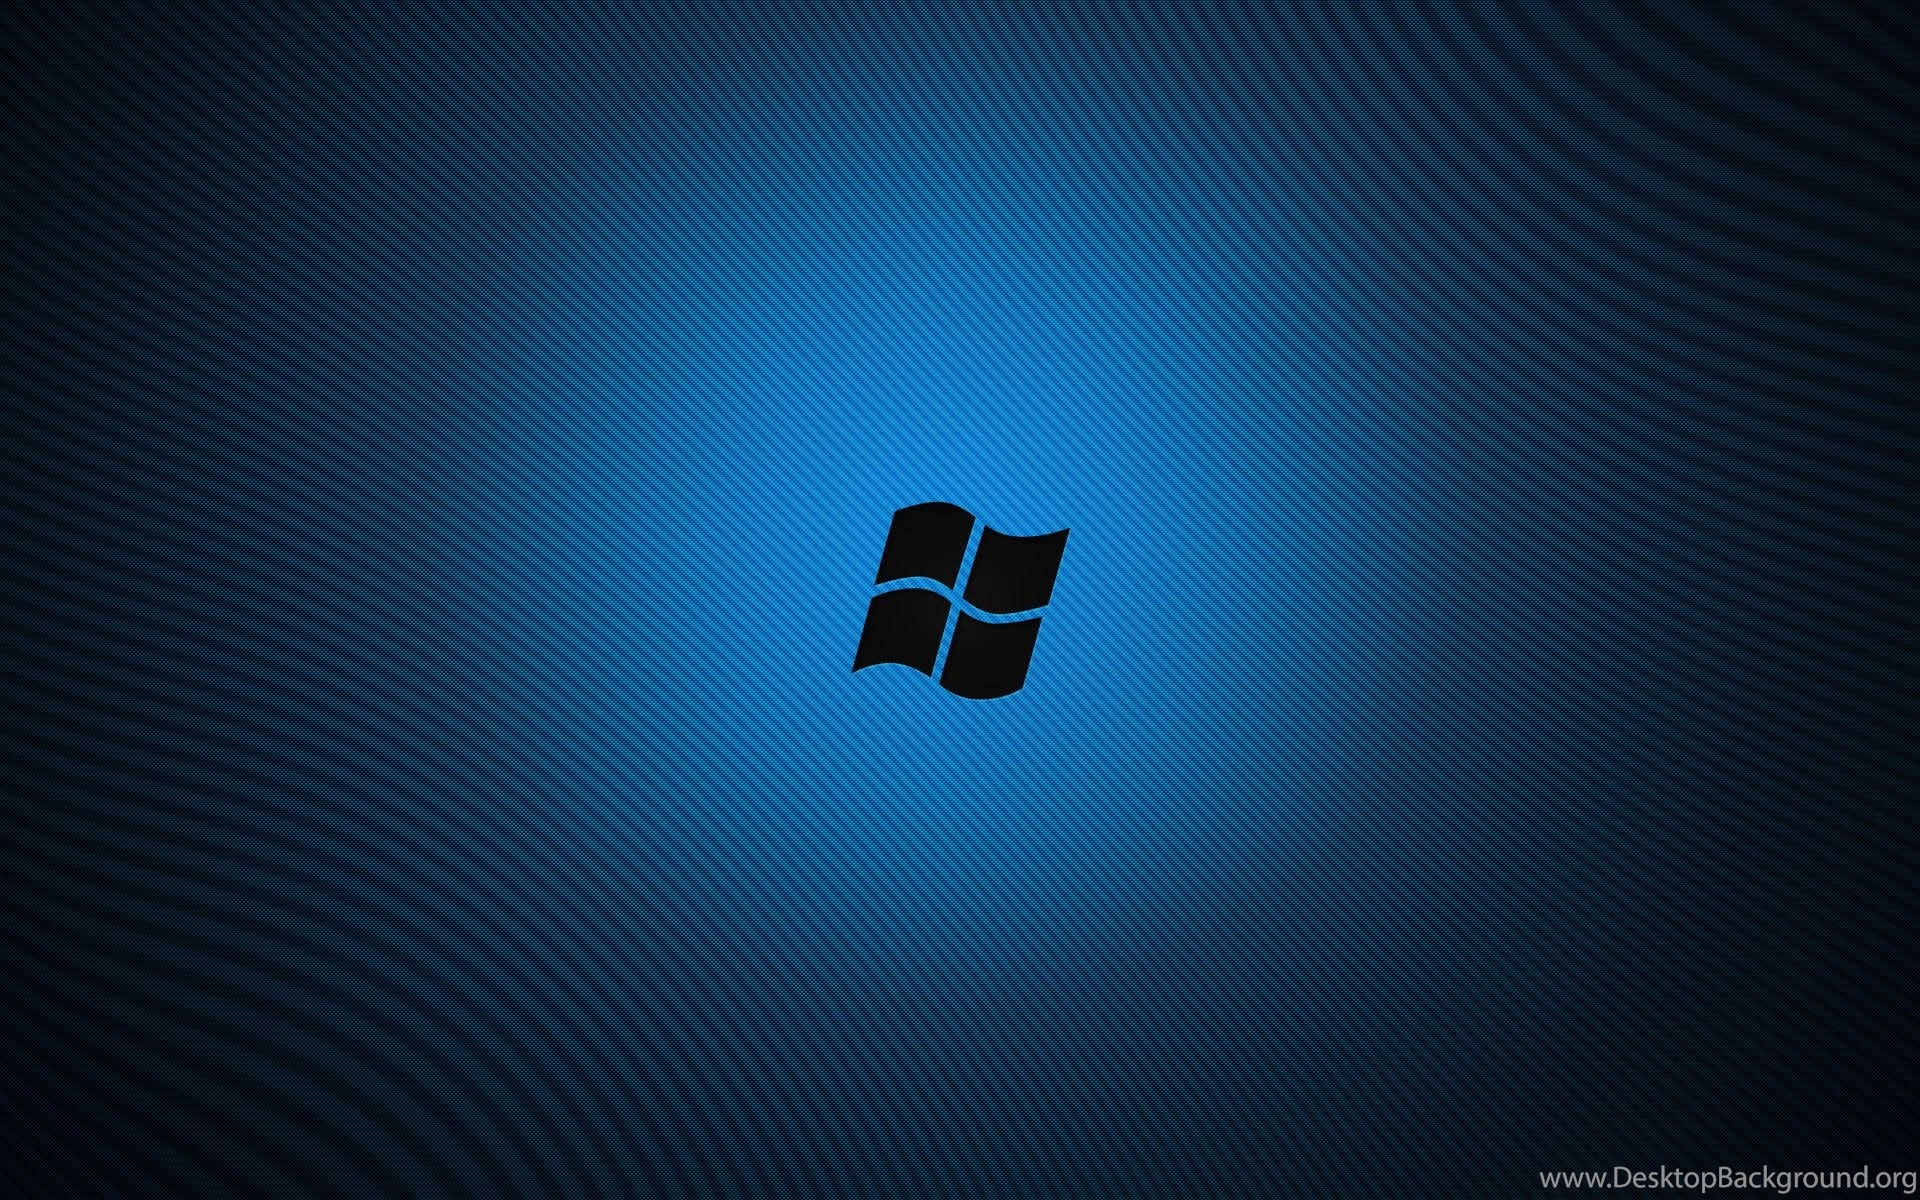 windows 7 black wallpaper backgrounds dark hd desktop wallpapers